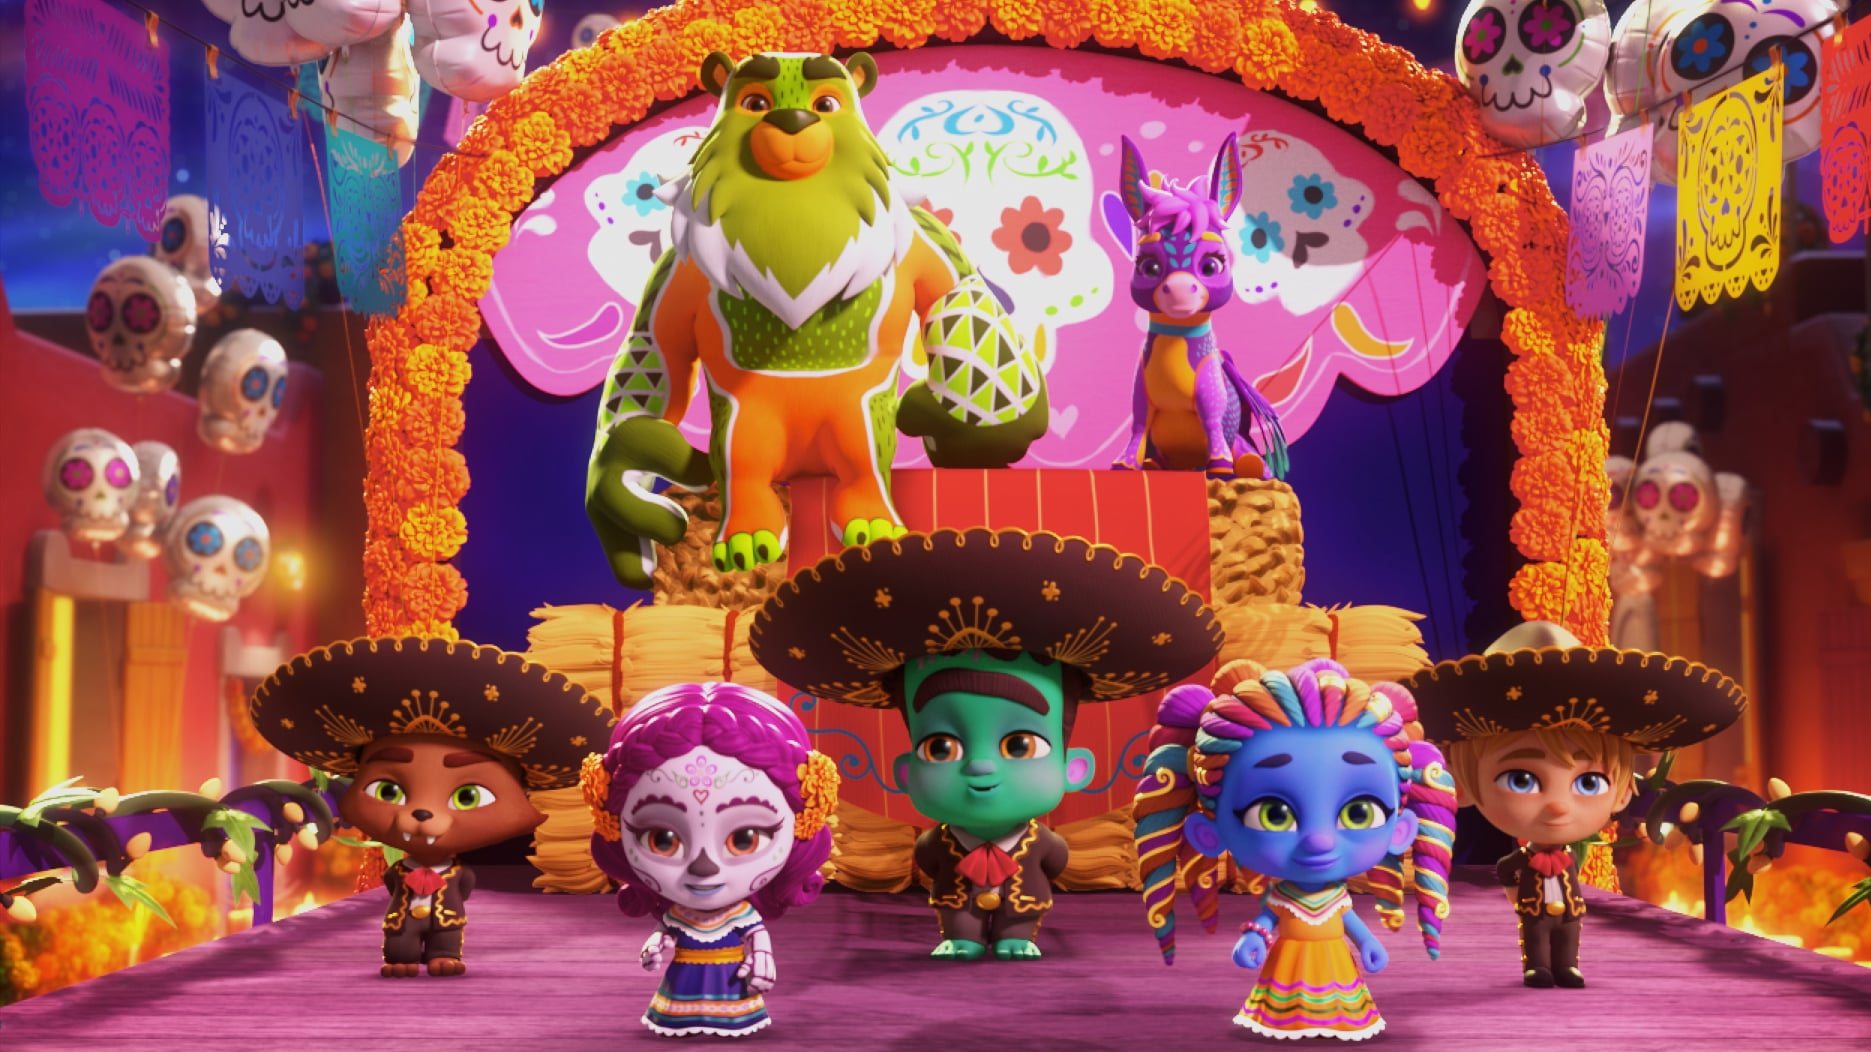 Super Monsters: Dia de los Monsters | Halloween Specials Galore and the Other New Shows For Your Kids on Netflix in 2020 | POPSUGAR Family Photo 5